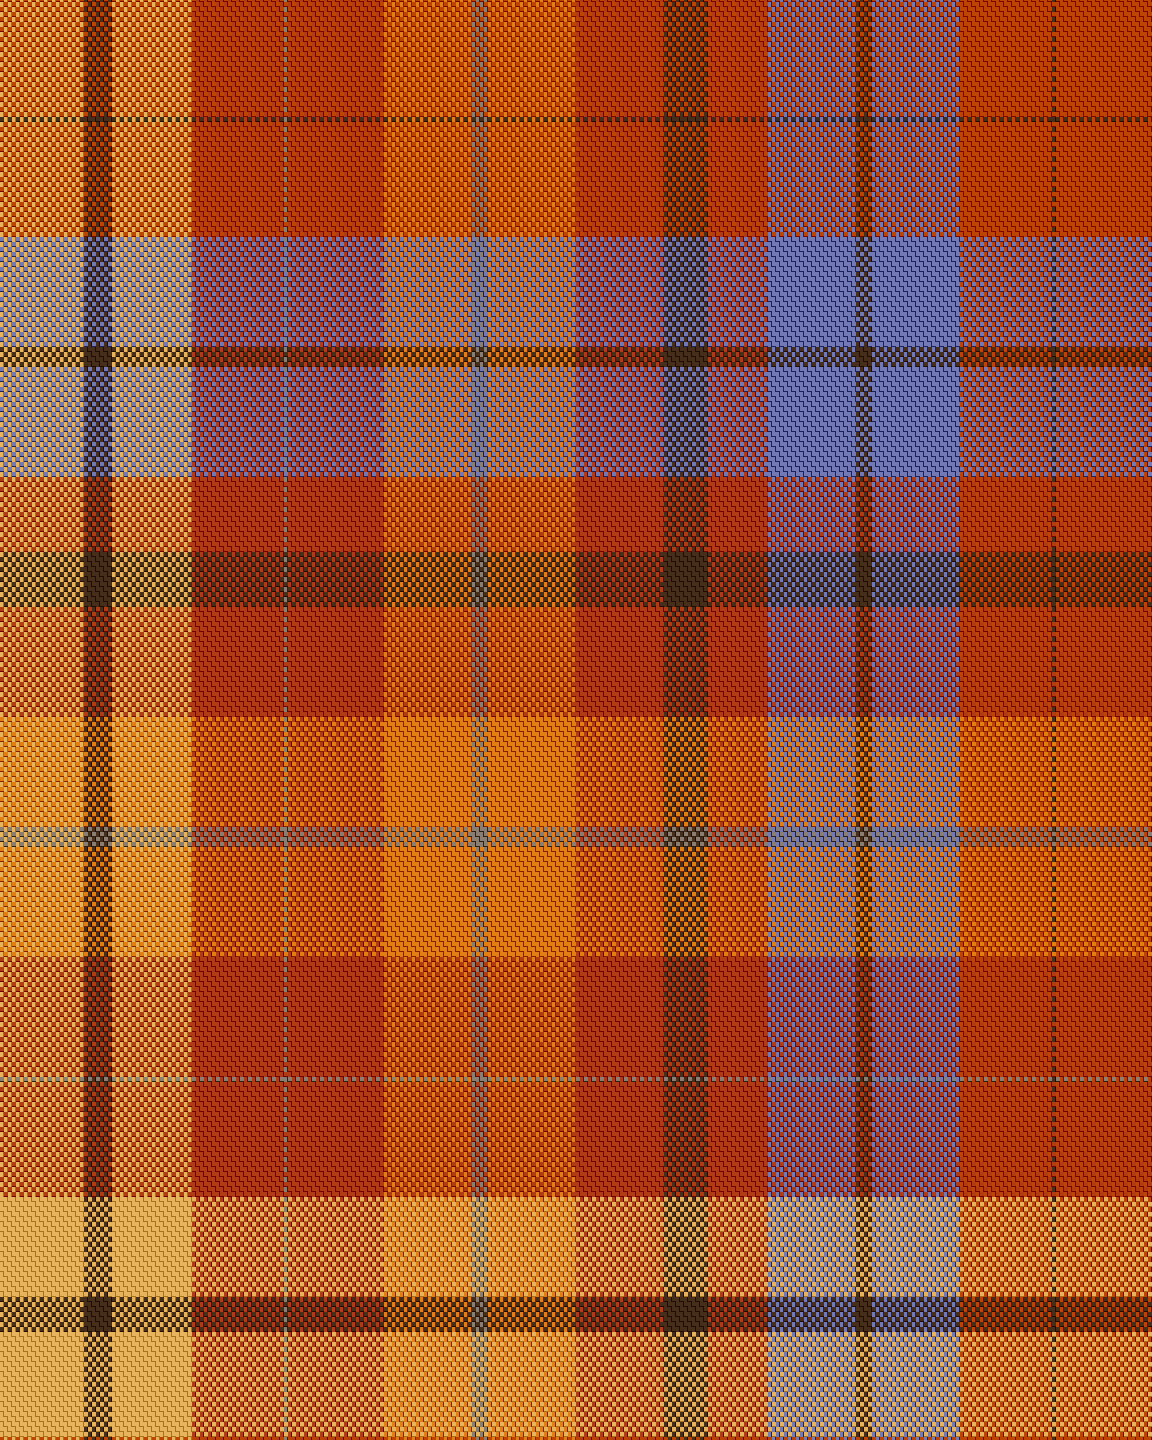 india plaid.png